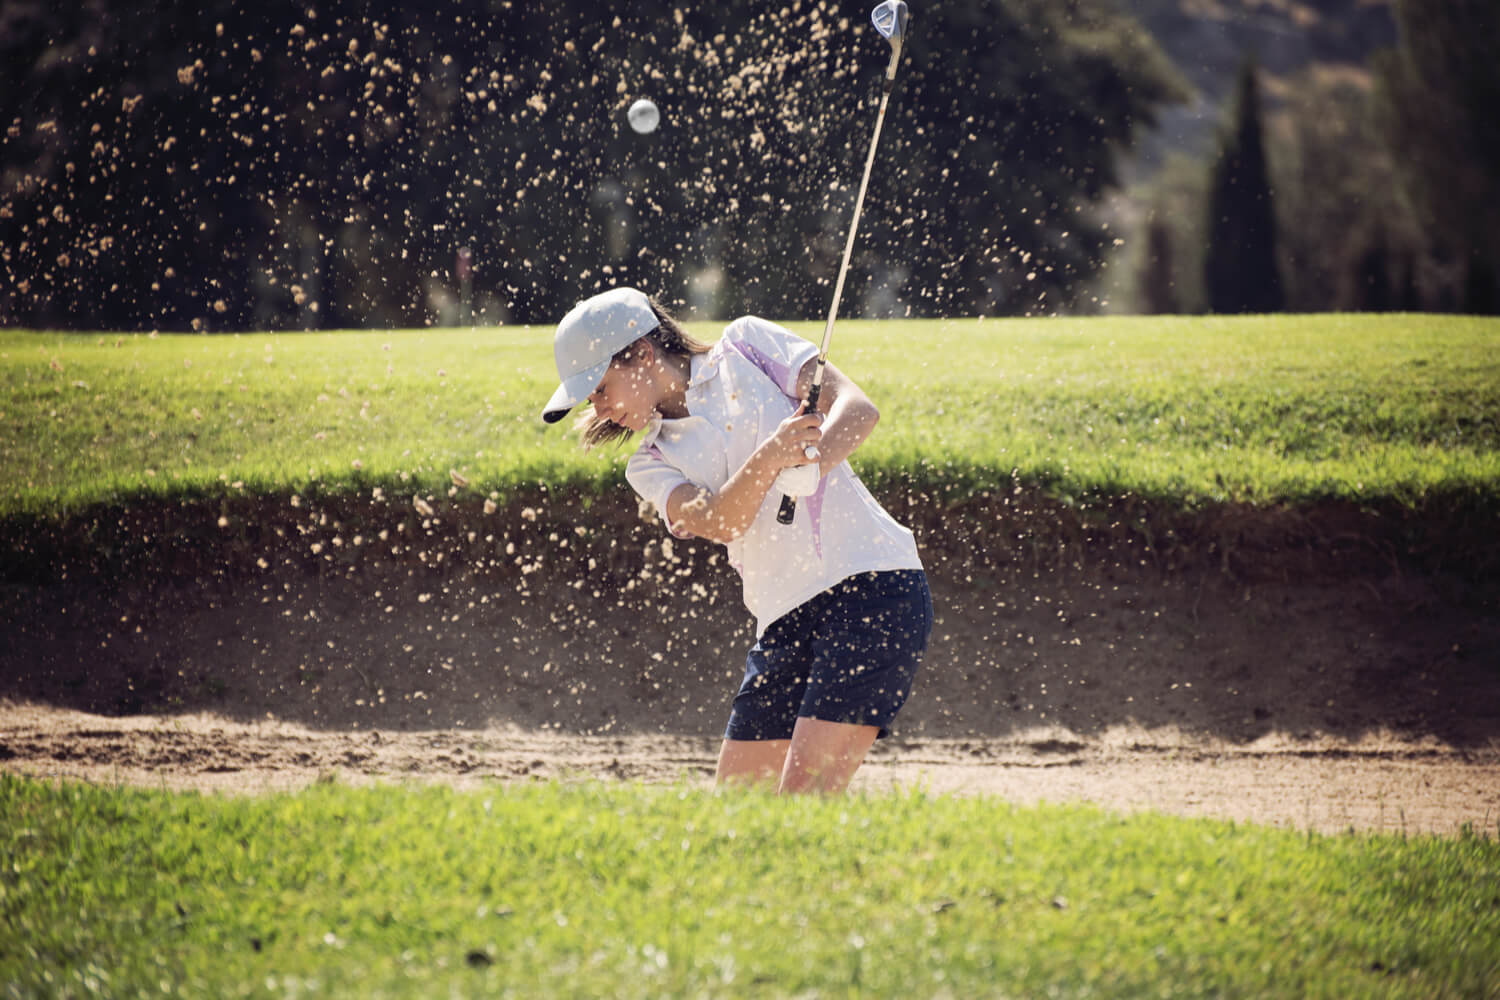 A female golfer chips out of the sand trap at a Wisconsin Dells golf course.